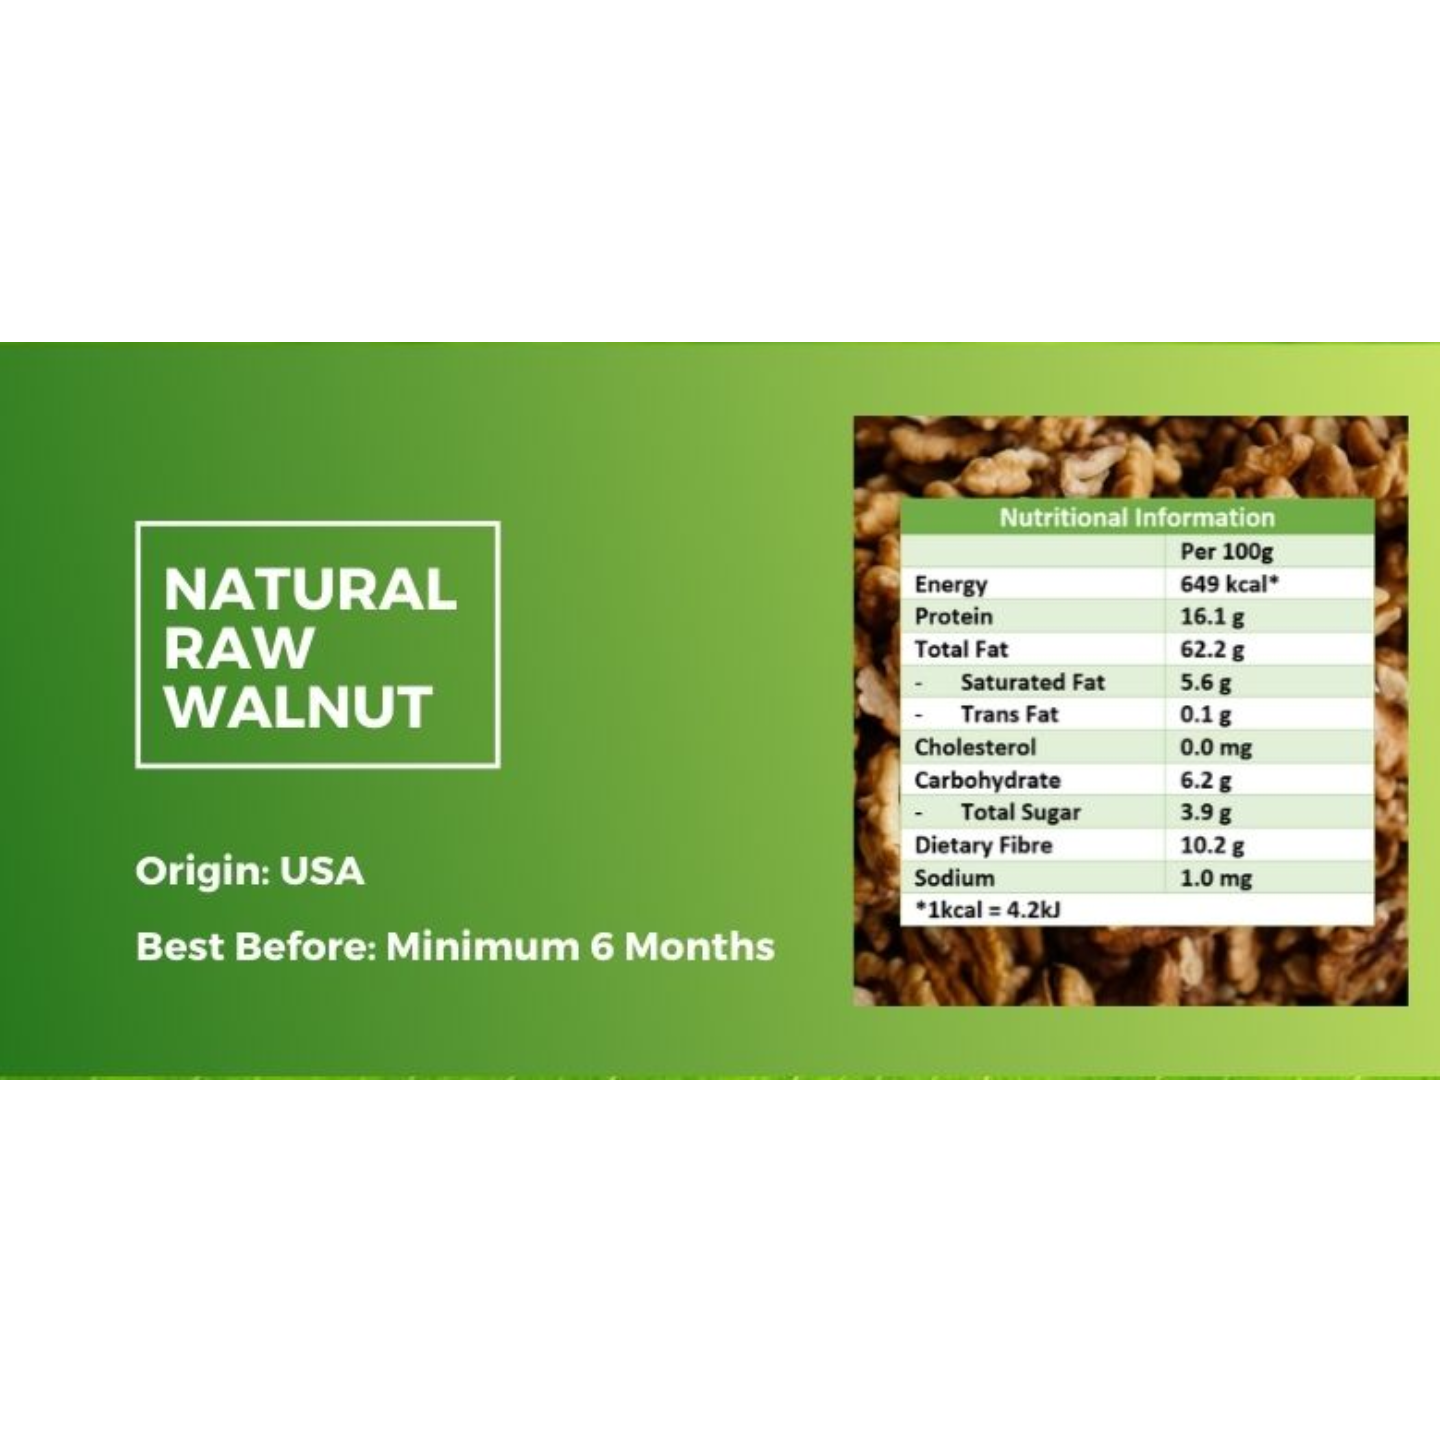 Natural Raw Walnut [500g] - Value Pack